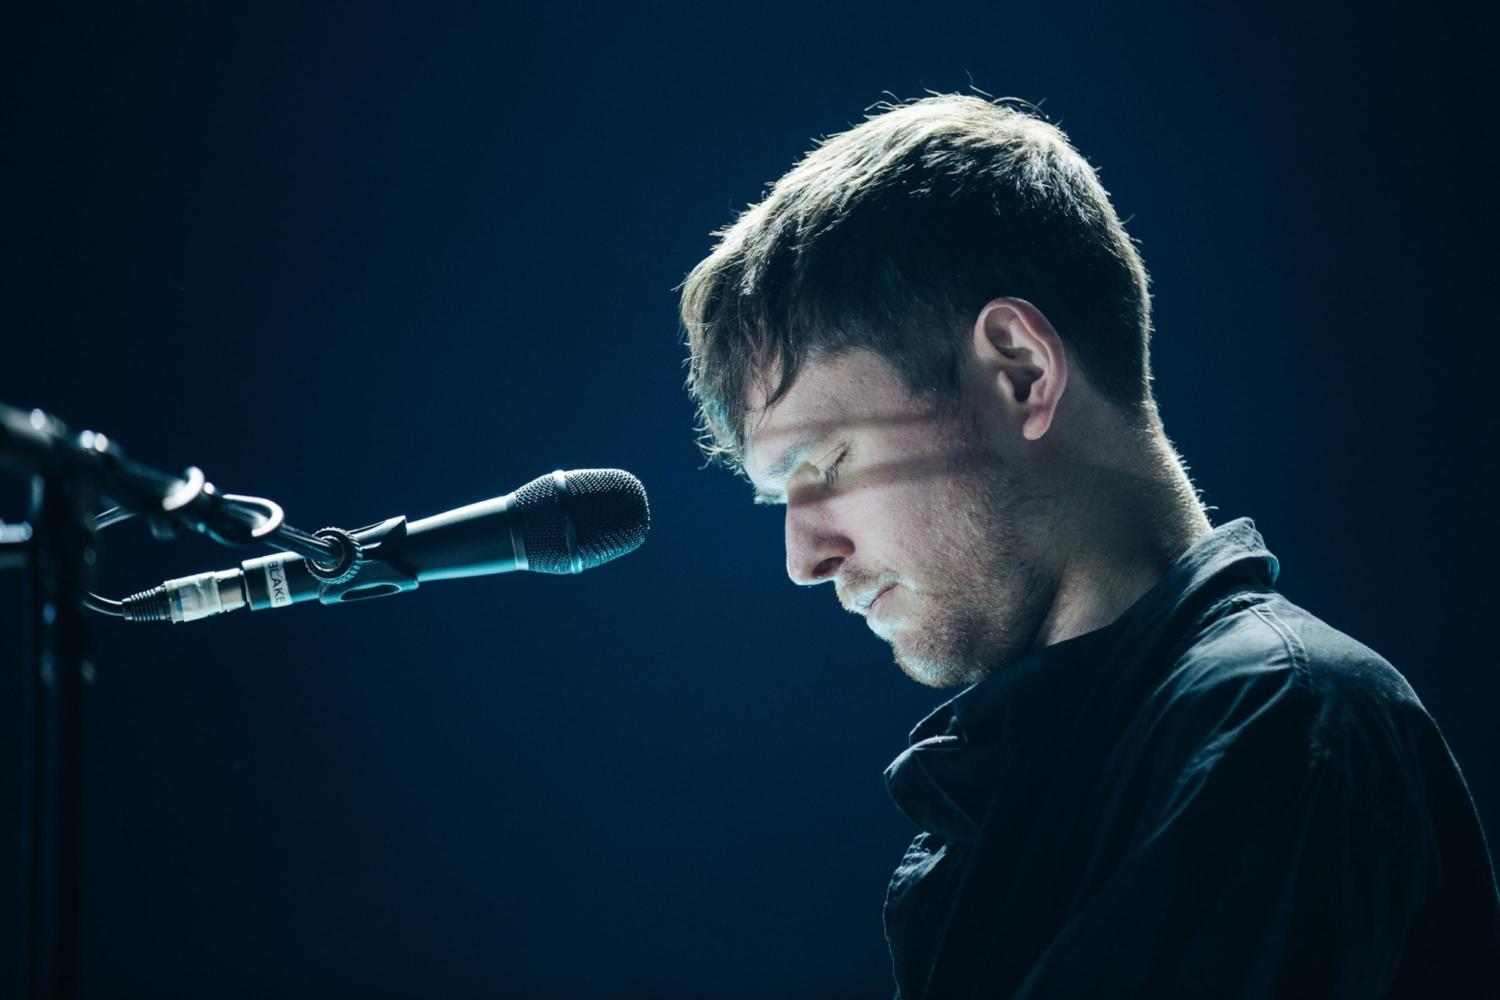 Watch James Blake perform 'I'll Come Too' live on Ellen